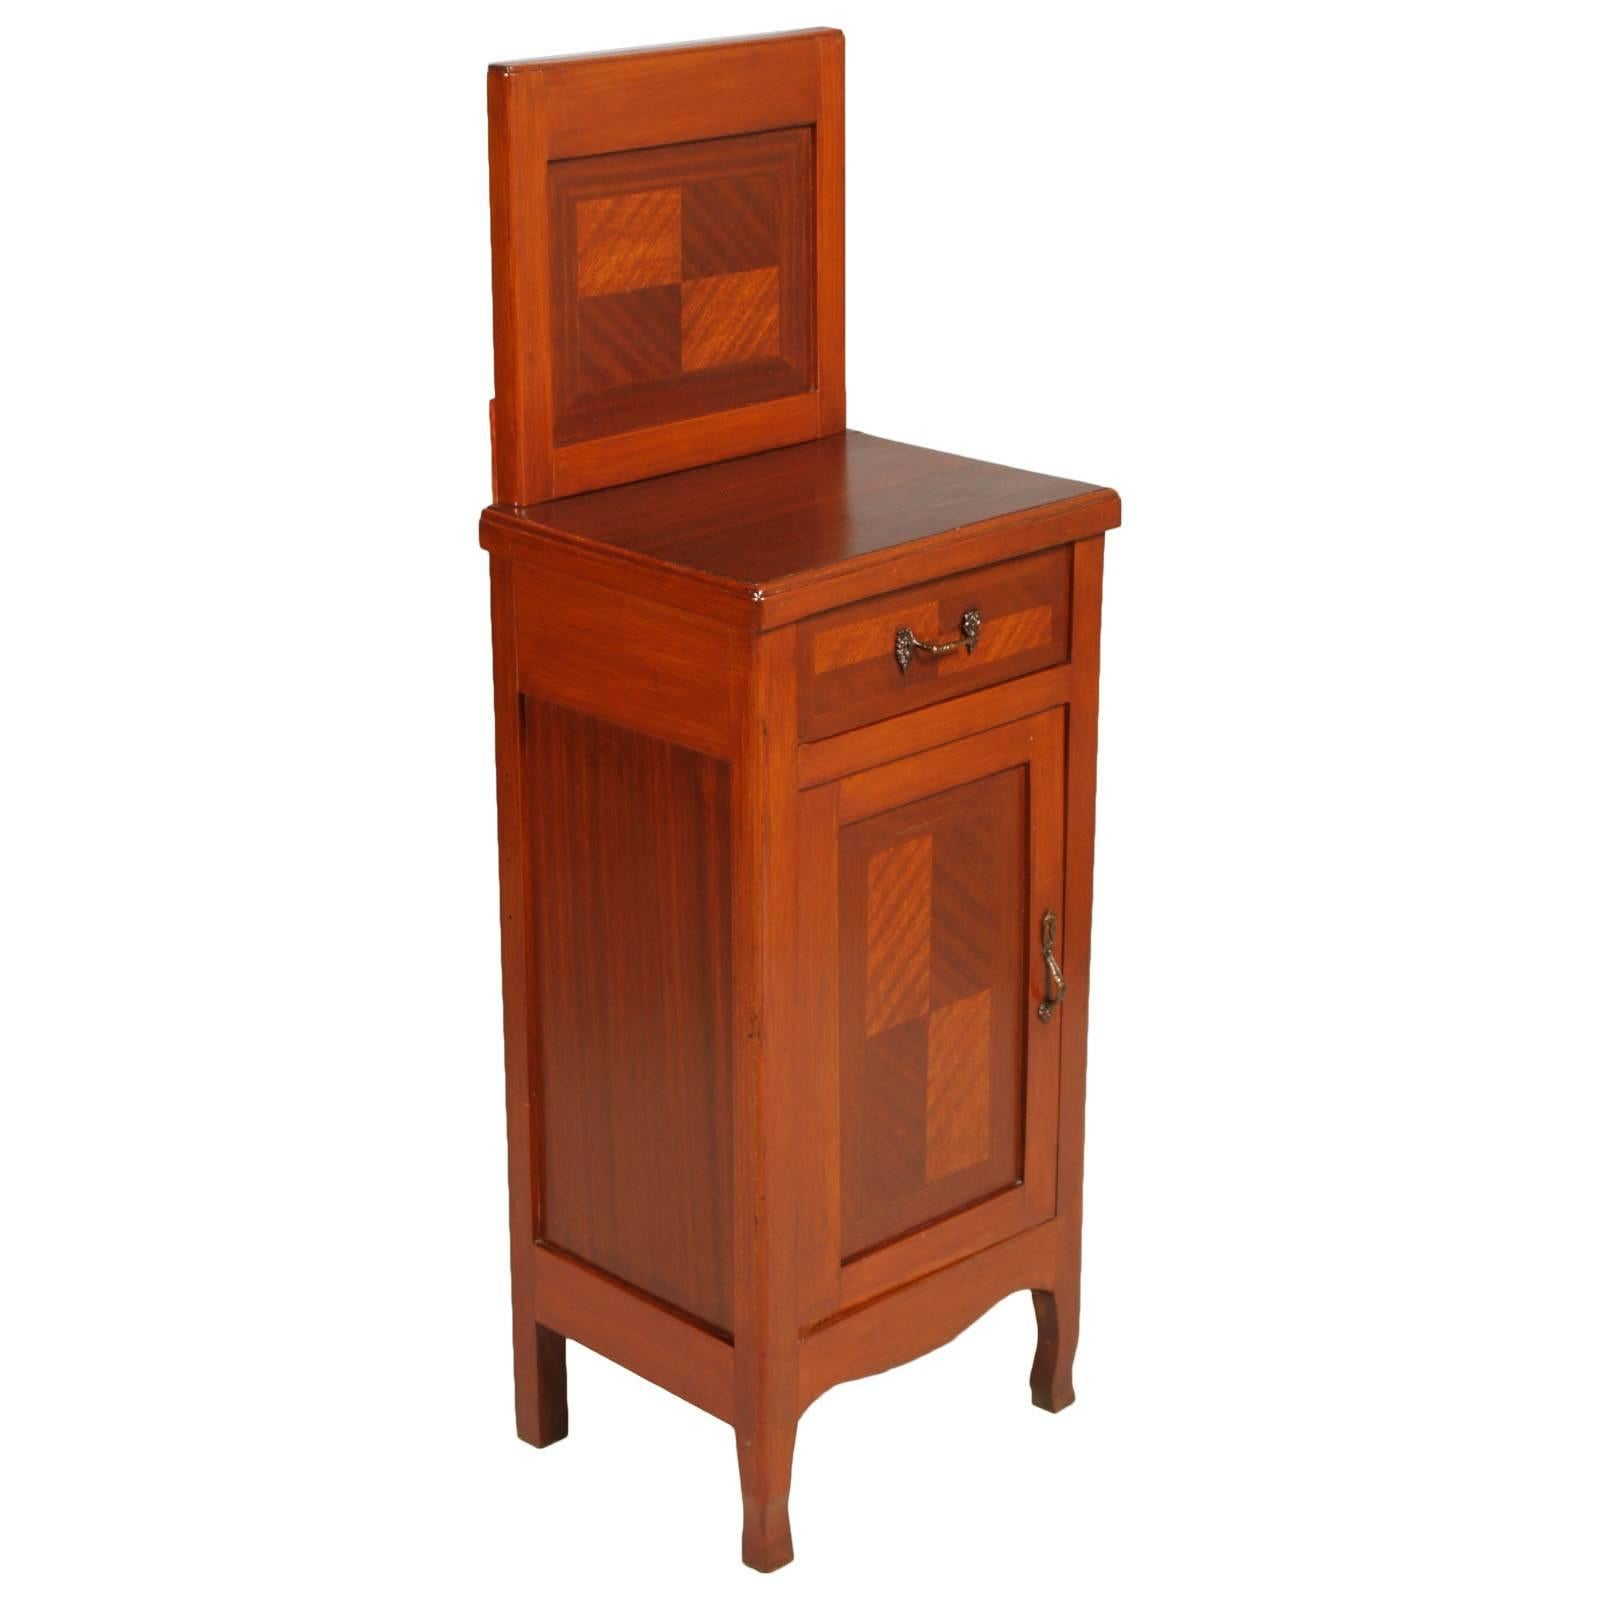 Early 20th Century Italian Art Nouveau Nightstand Restored and Polished to Wax